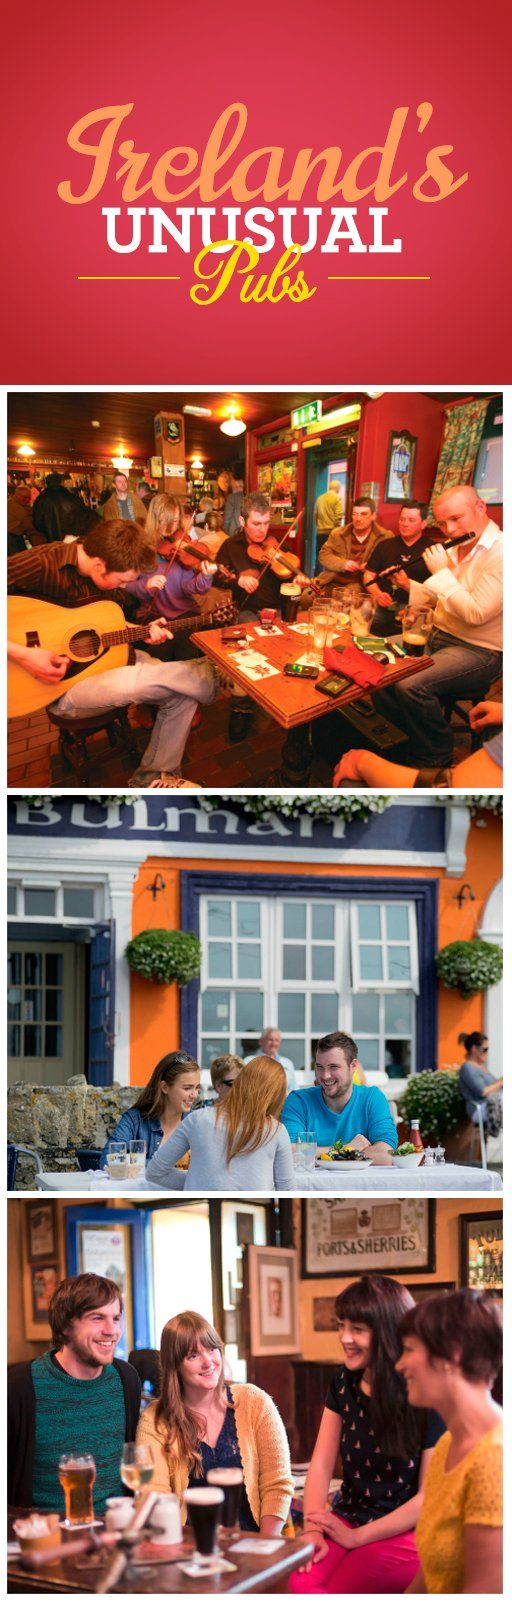 42 best traditional irish pubs images on pinterest what is